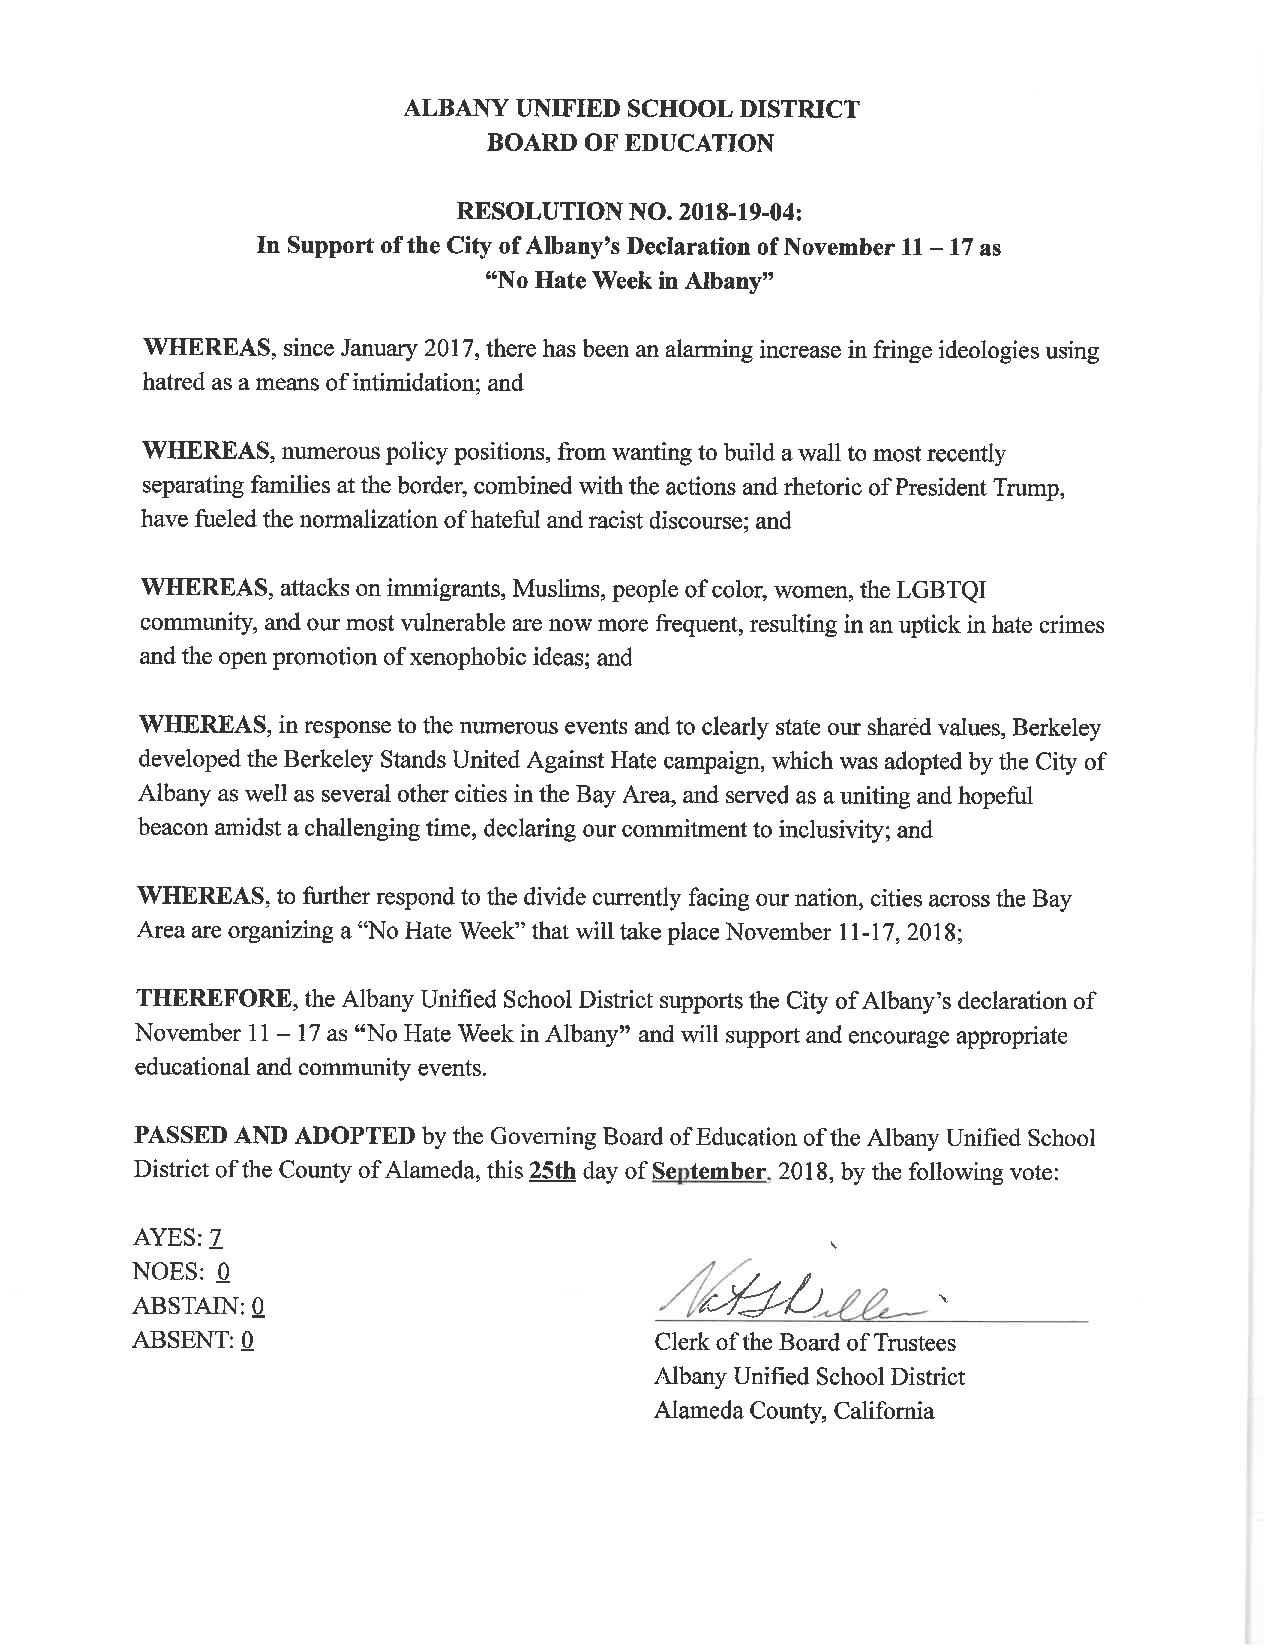 Albany Unified School District Board of Education Resolution